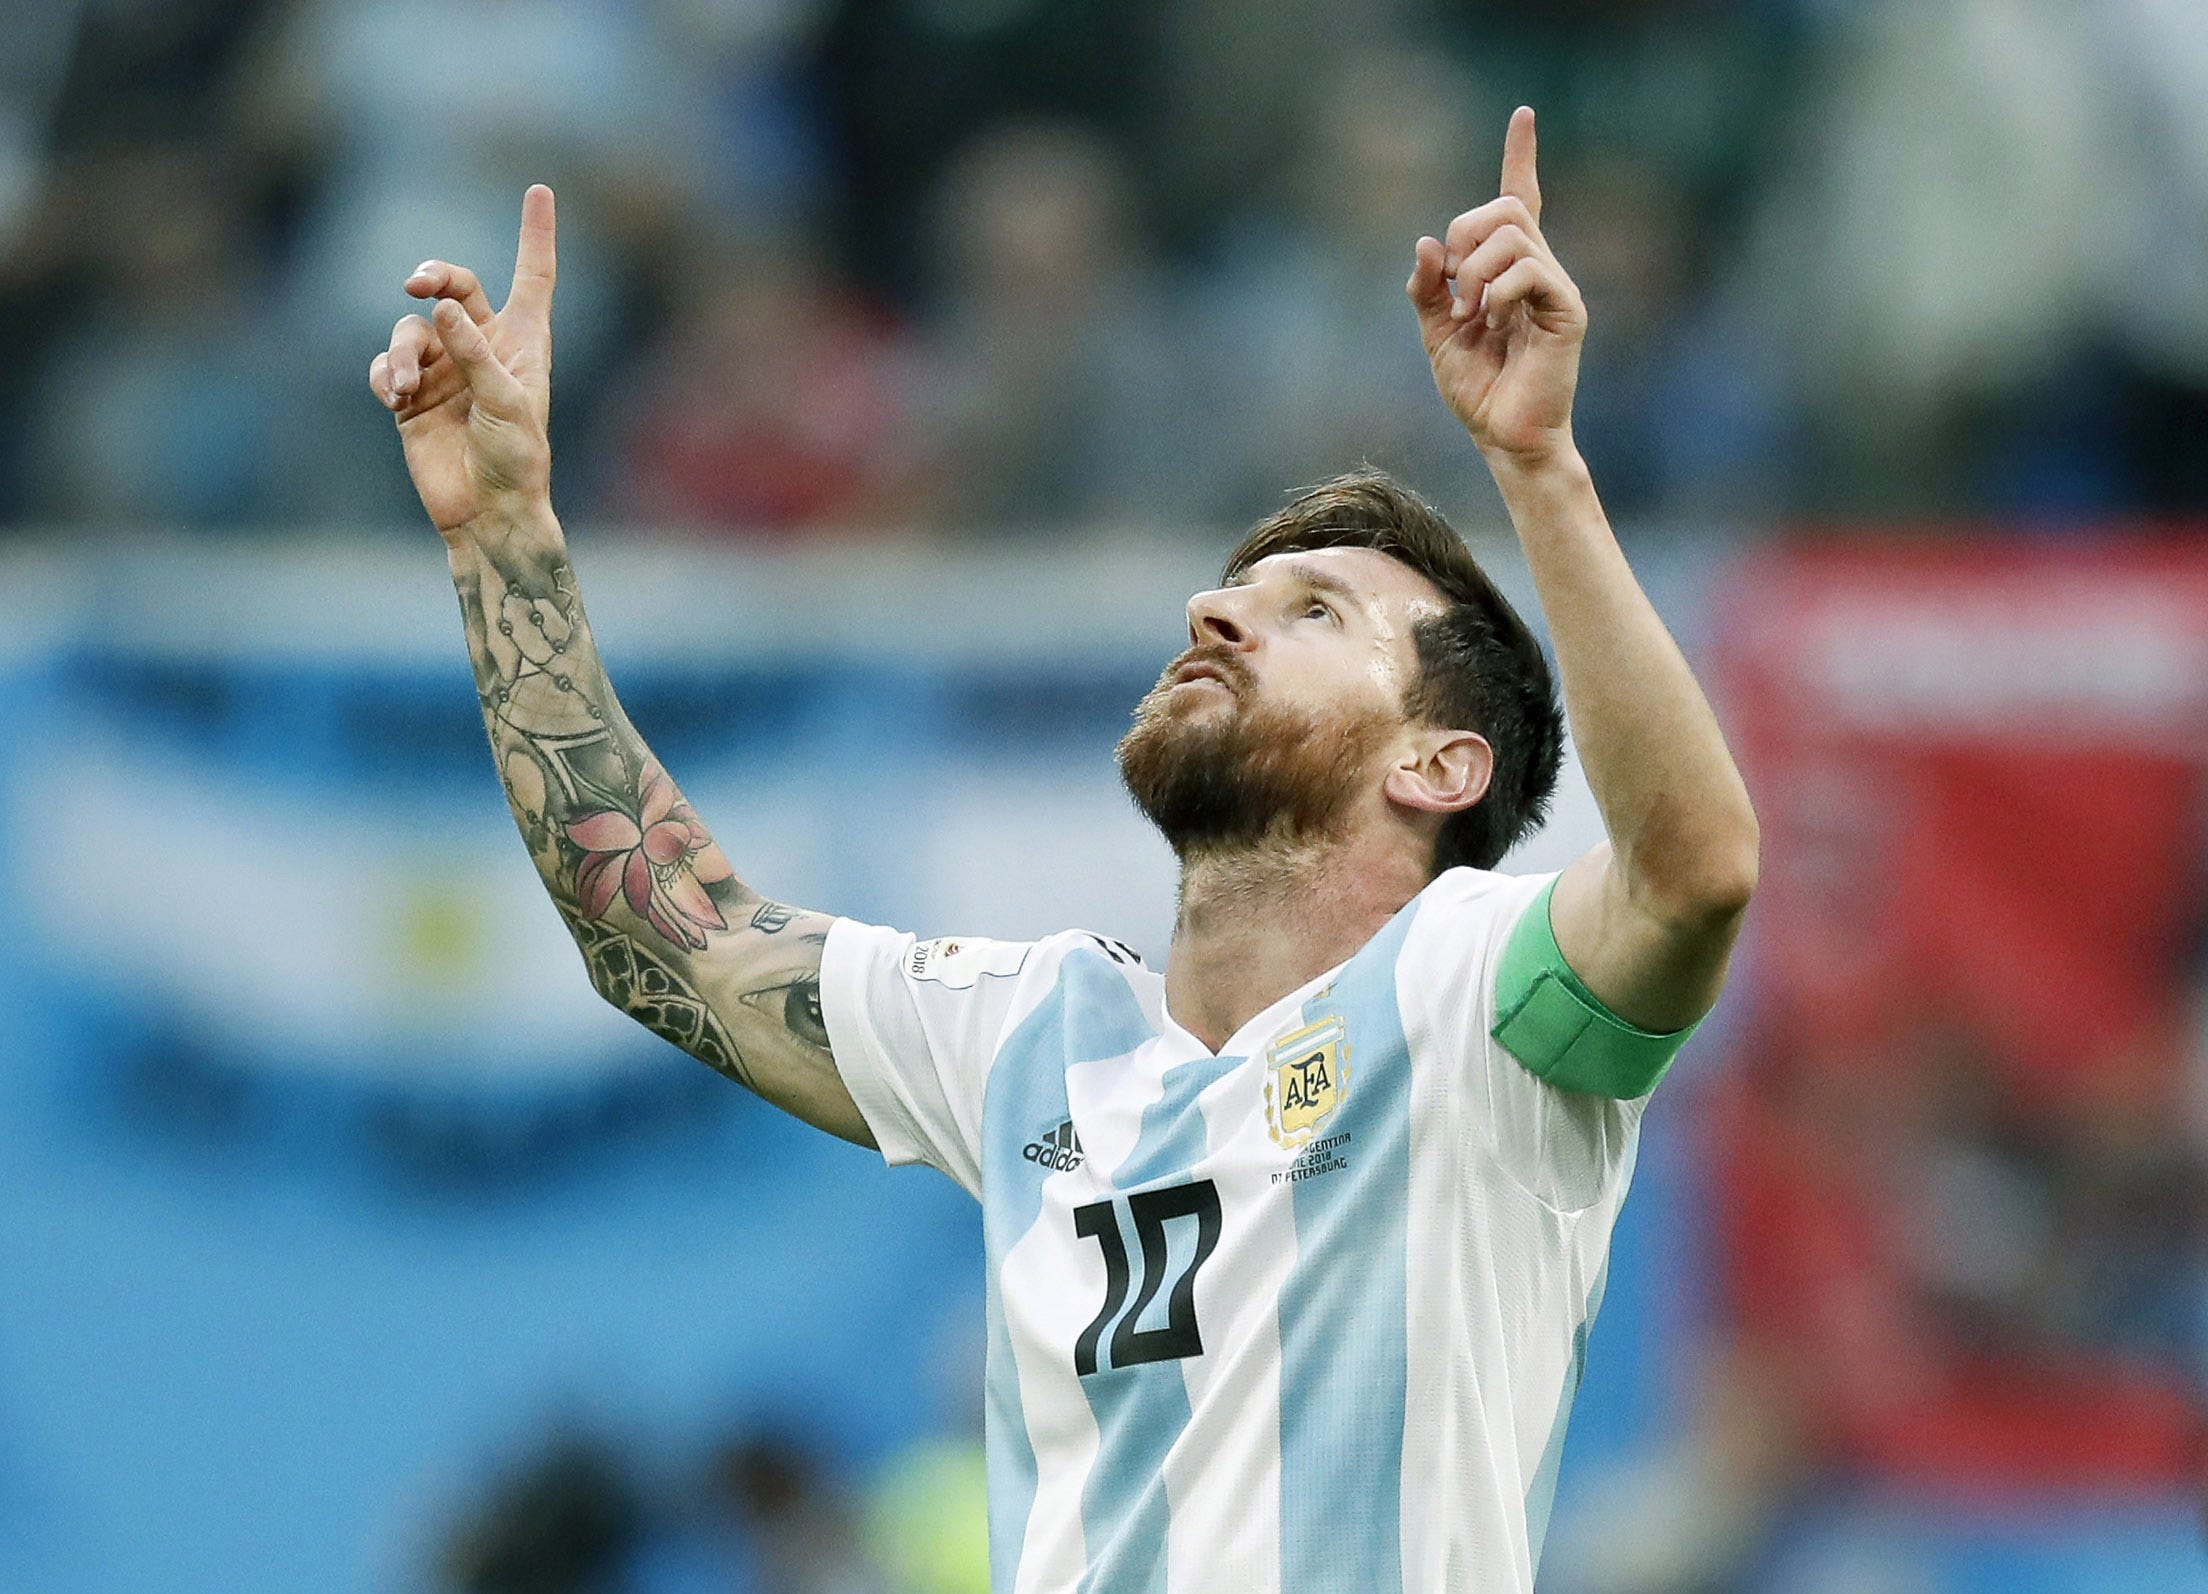 Lionel Messi, from Argentina, celebrates his goal against Nigeria in Group D play during the FIFA World Cup 2018 at St. Petersburg Stadium in St. Petersburg, Russia.